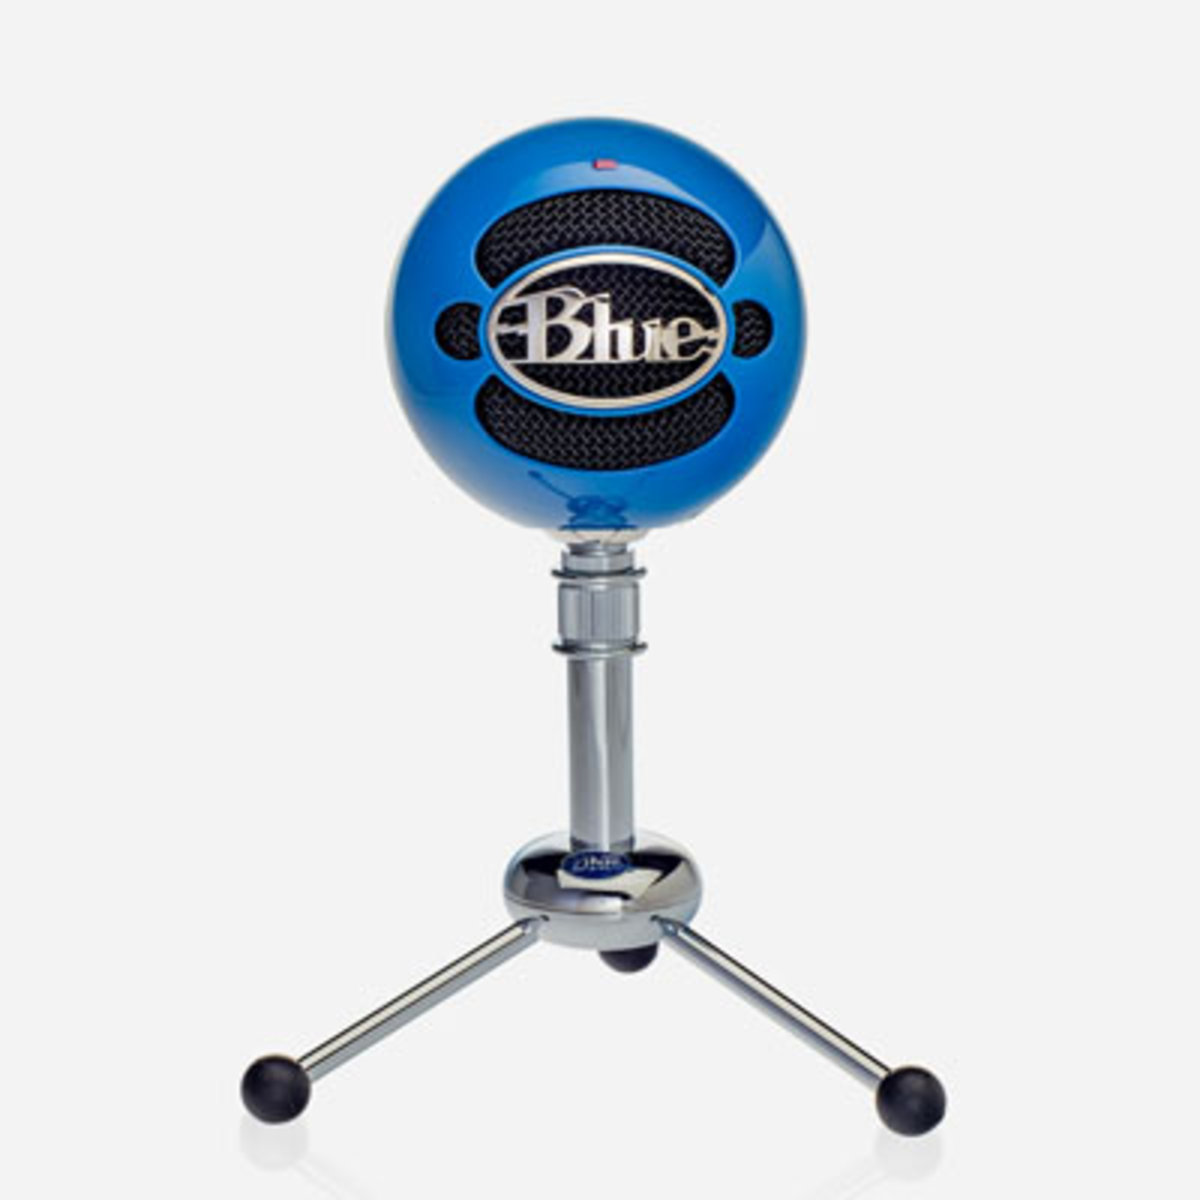 Snowball - Classic Studio-Quality USB Microphone - Neon Blue